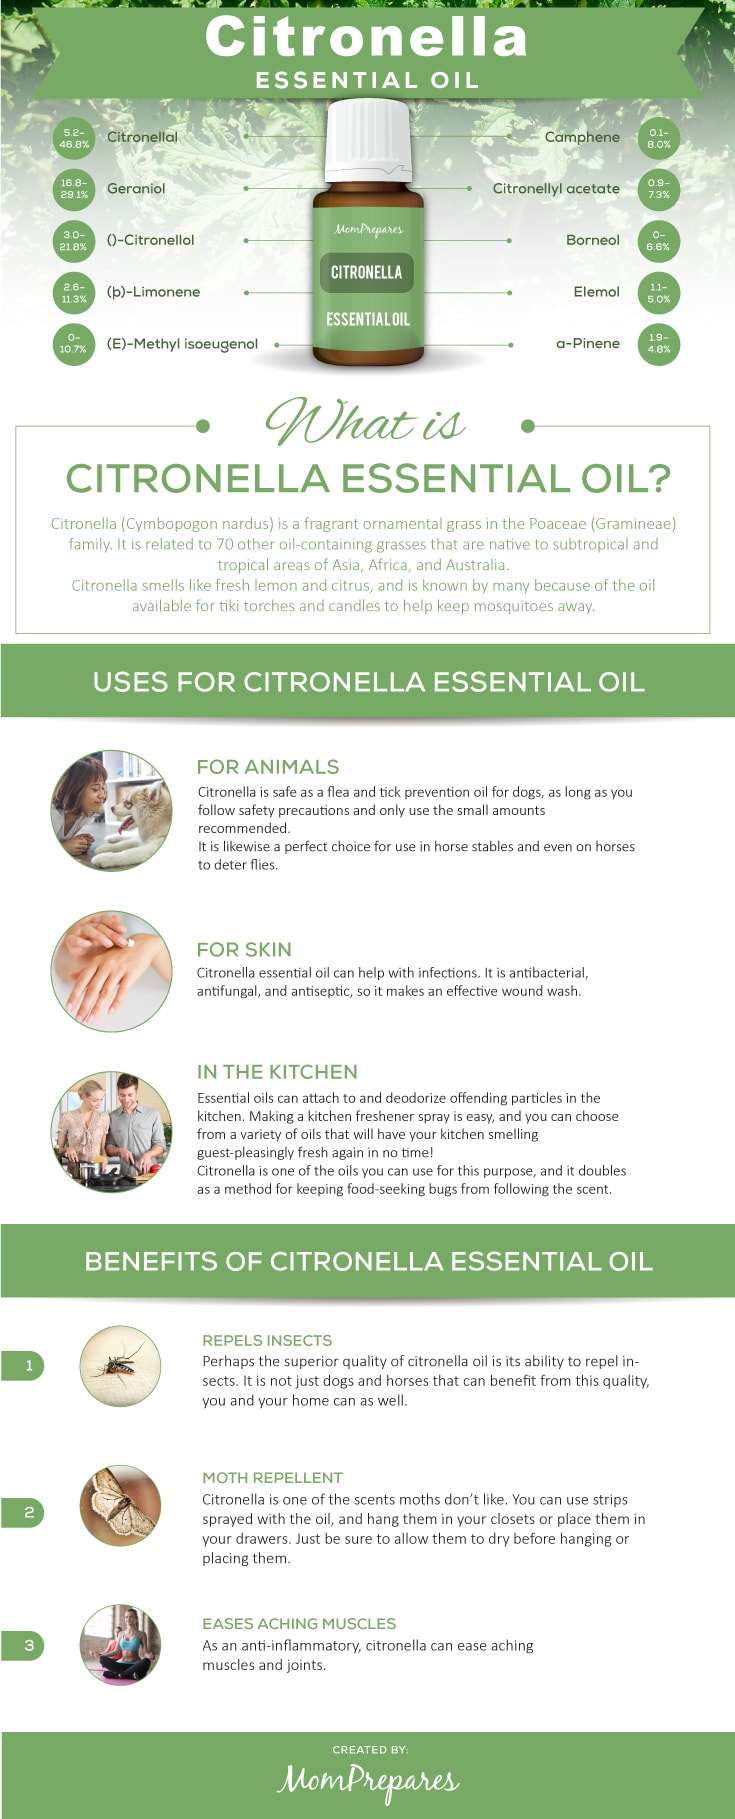 Citronella Essential Oil - The Complete Uses and Benefits ...